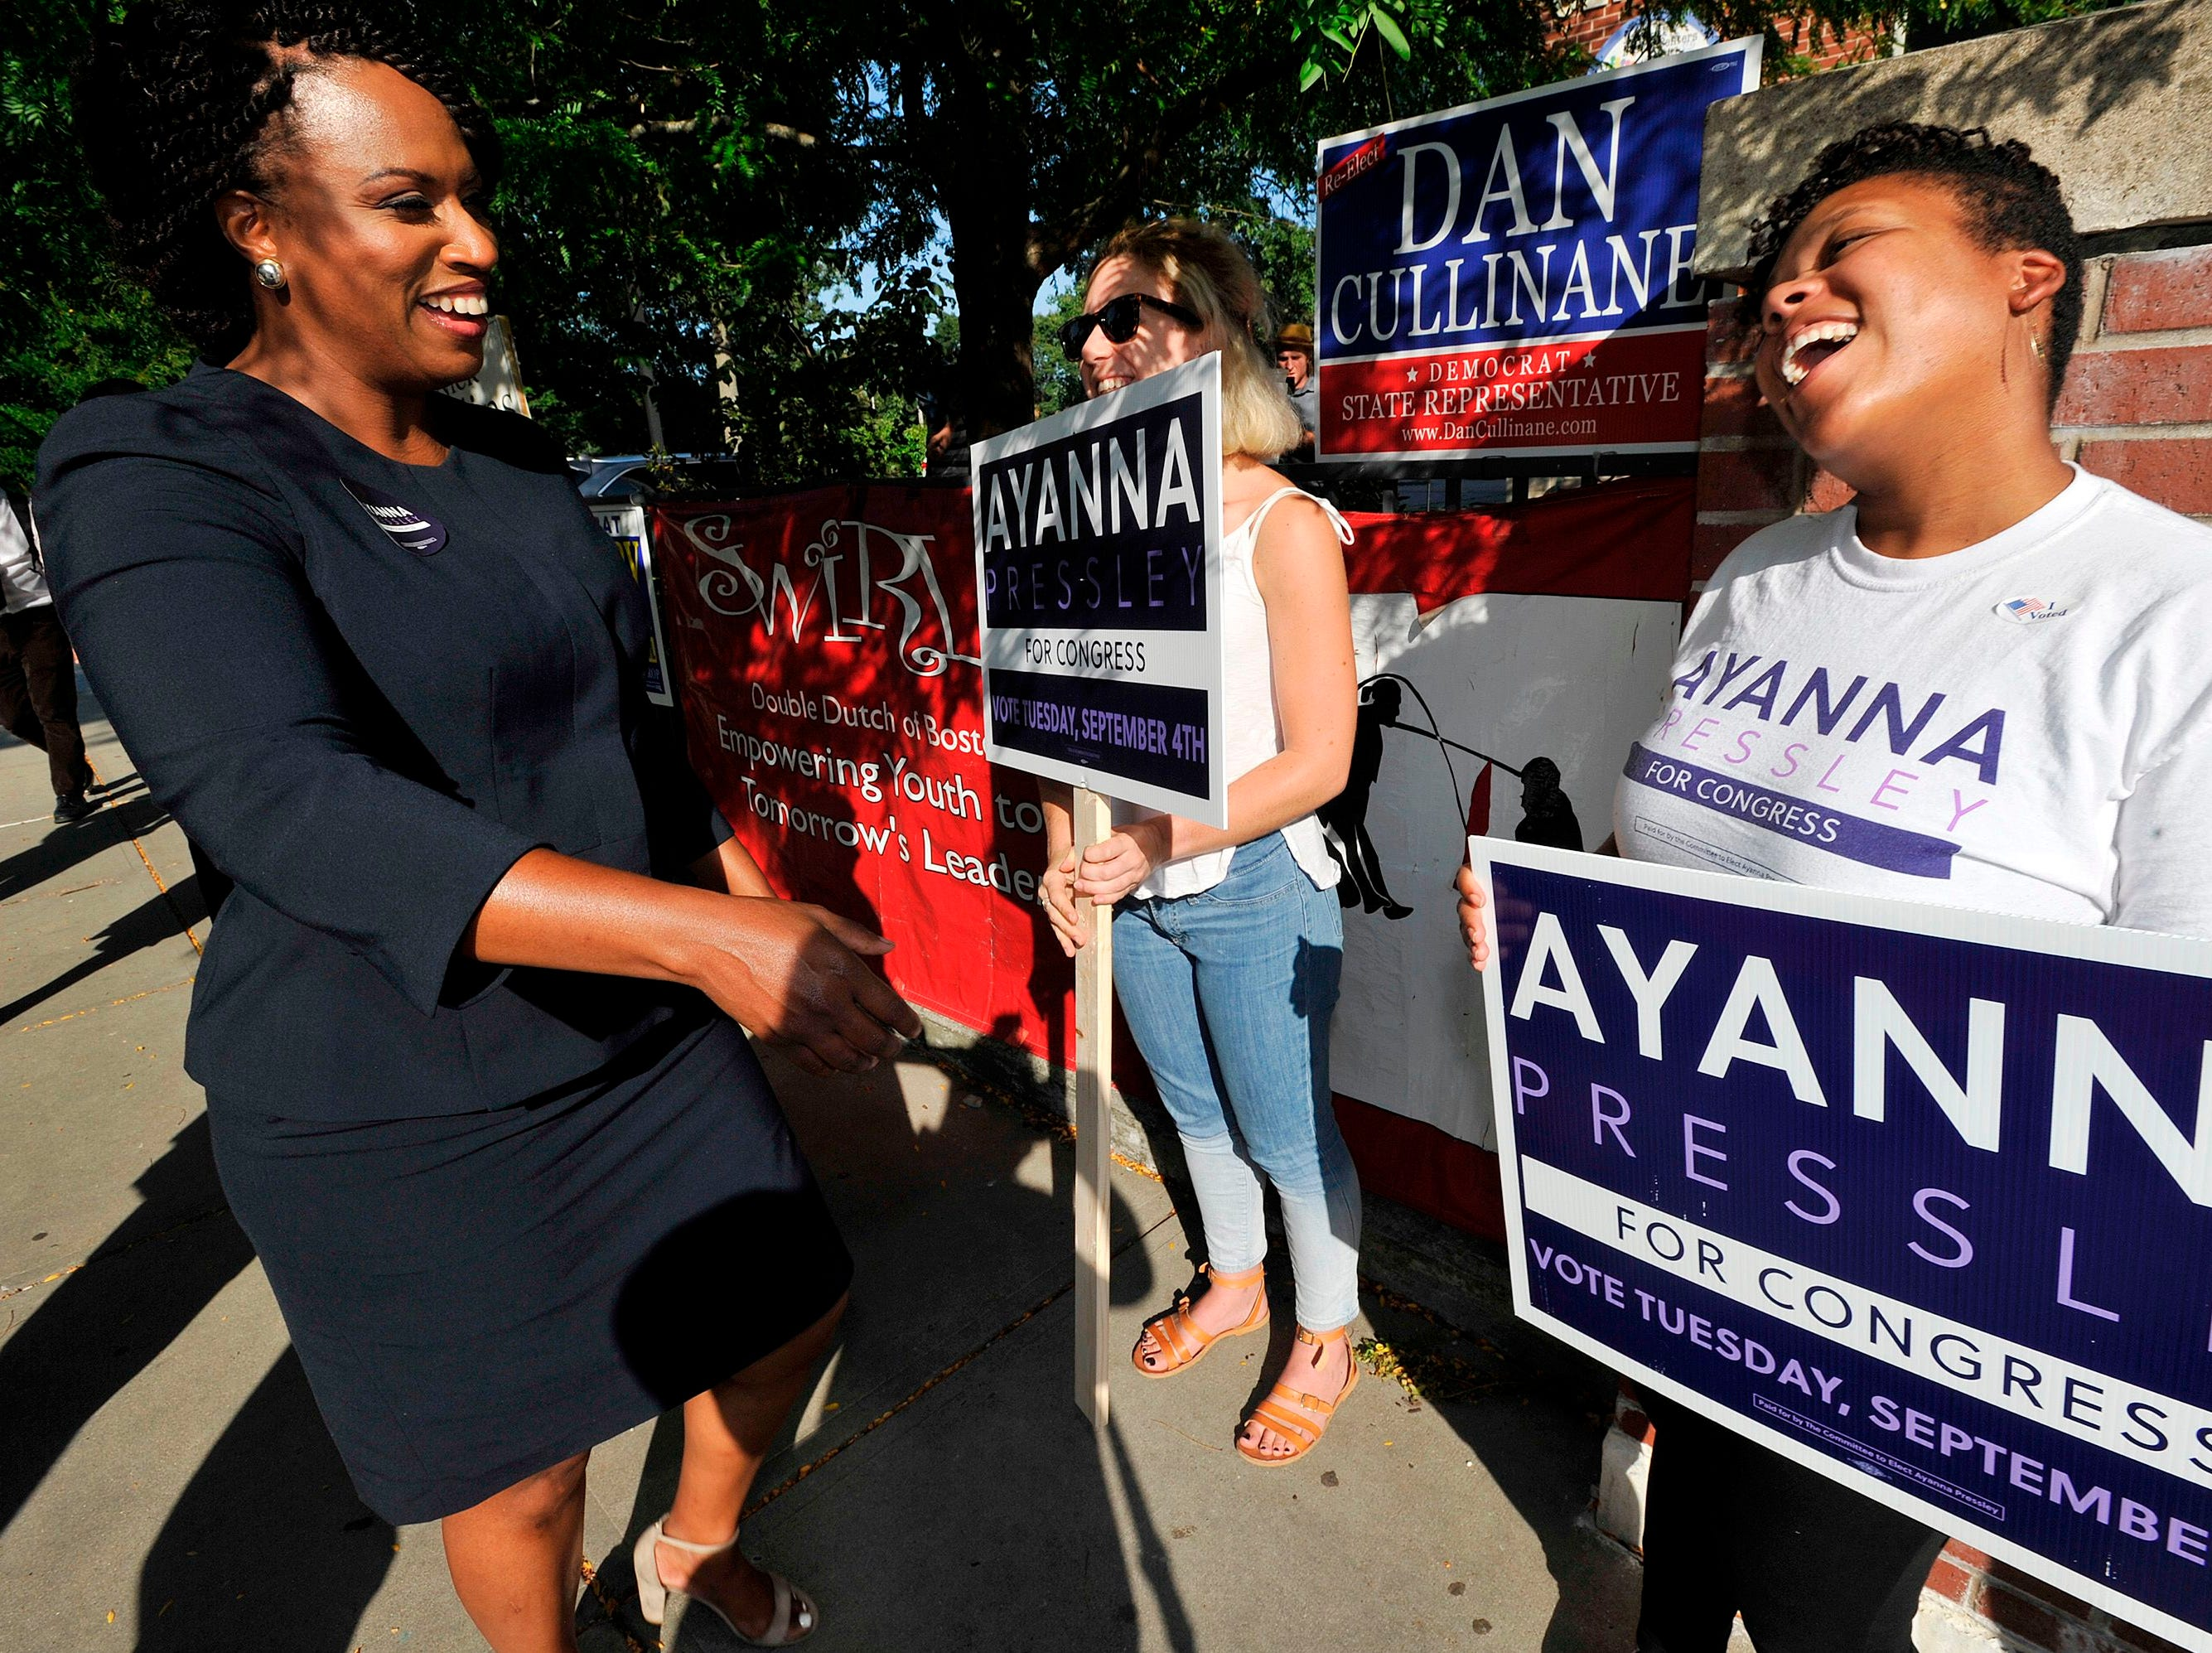 Ayanna Pressley, Democratic candidate for Congress,  greets supporters at the Mildred Middle School and Community Center in Boston, that served as a polling station for primary election on September 4, 2018.